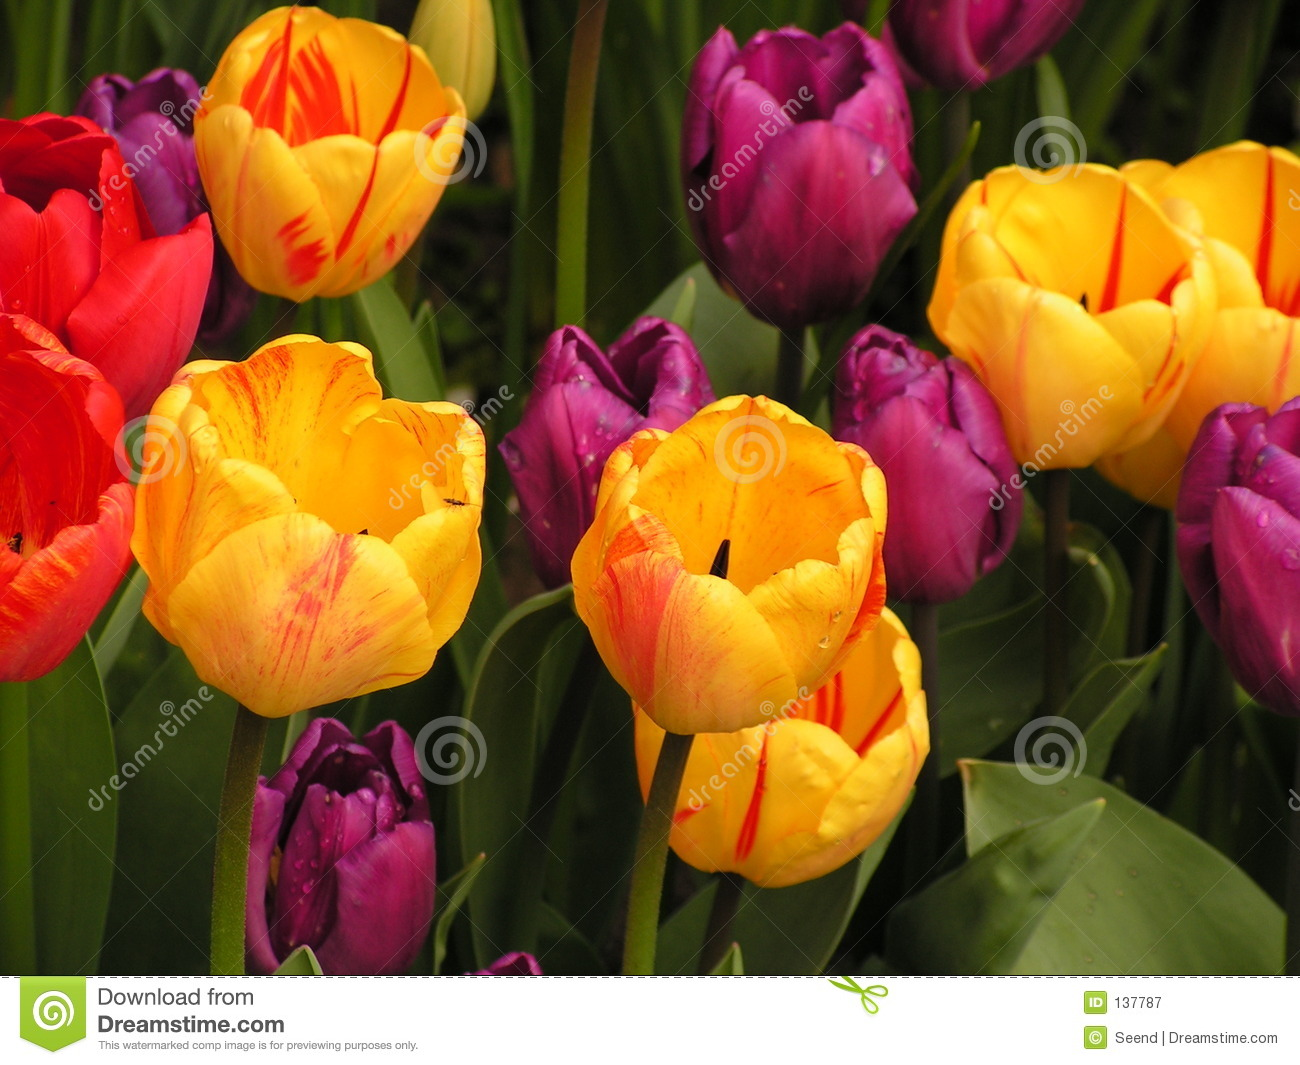 Tulipes hollandaises